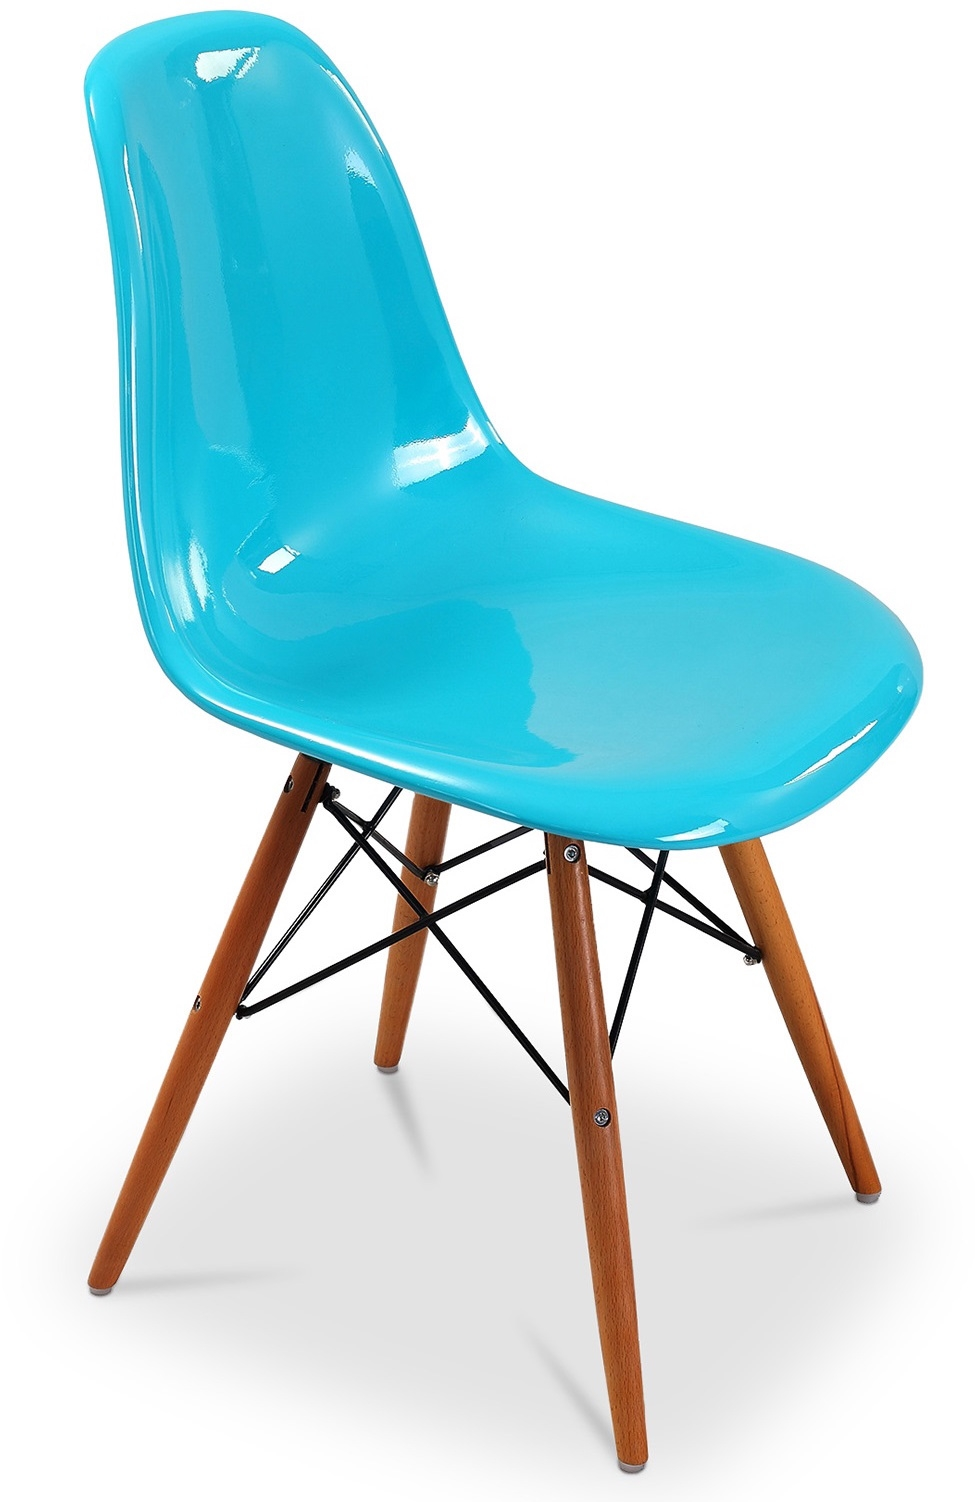 chaise fibre de verre turquoise brillant inspir e dsw lot de 4. Black Bedroom Furniture Sets. Home Design Ideas